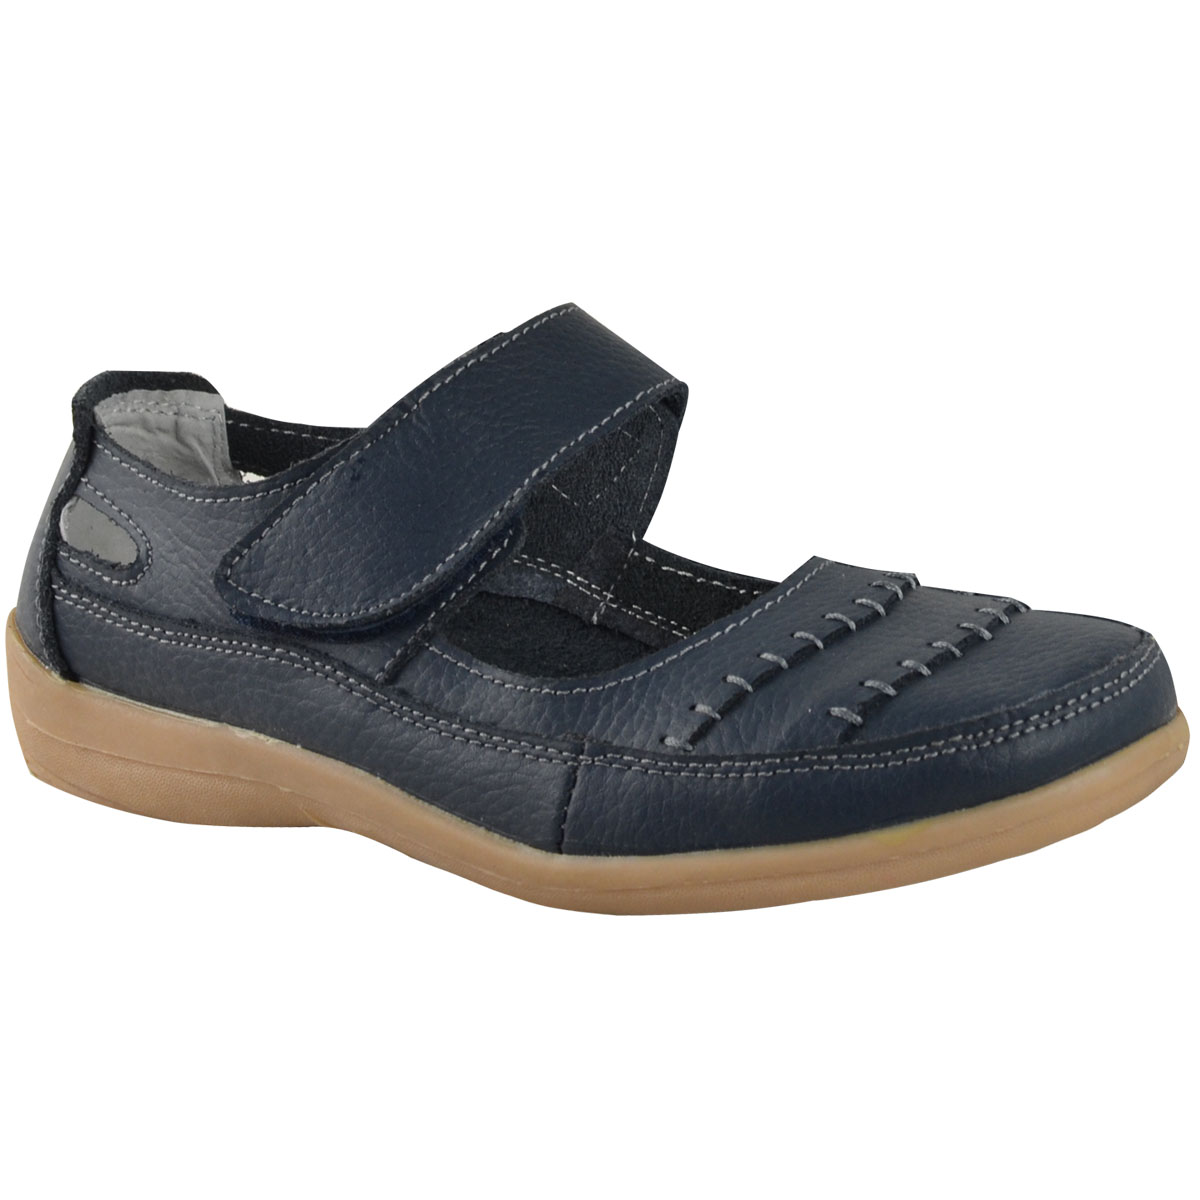 Women's casual shoes from The House will help you sashay into a new look this year. Featuring elegant slip-ons, stylish high-tops and a plethora of other designs to choose from, you're sure to find a shoe that screams you.